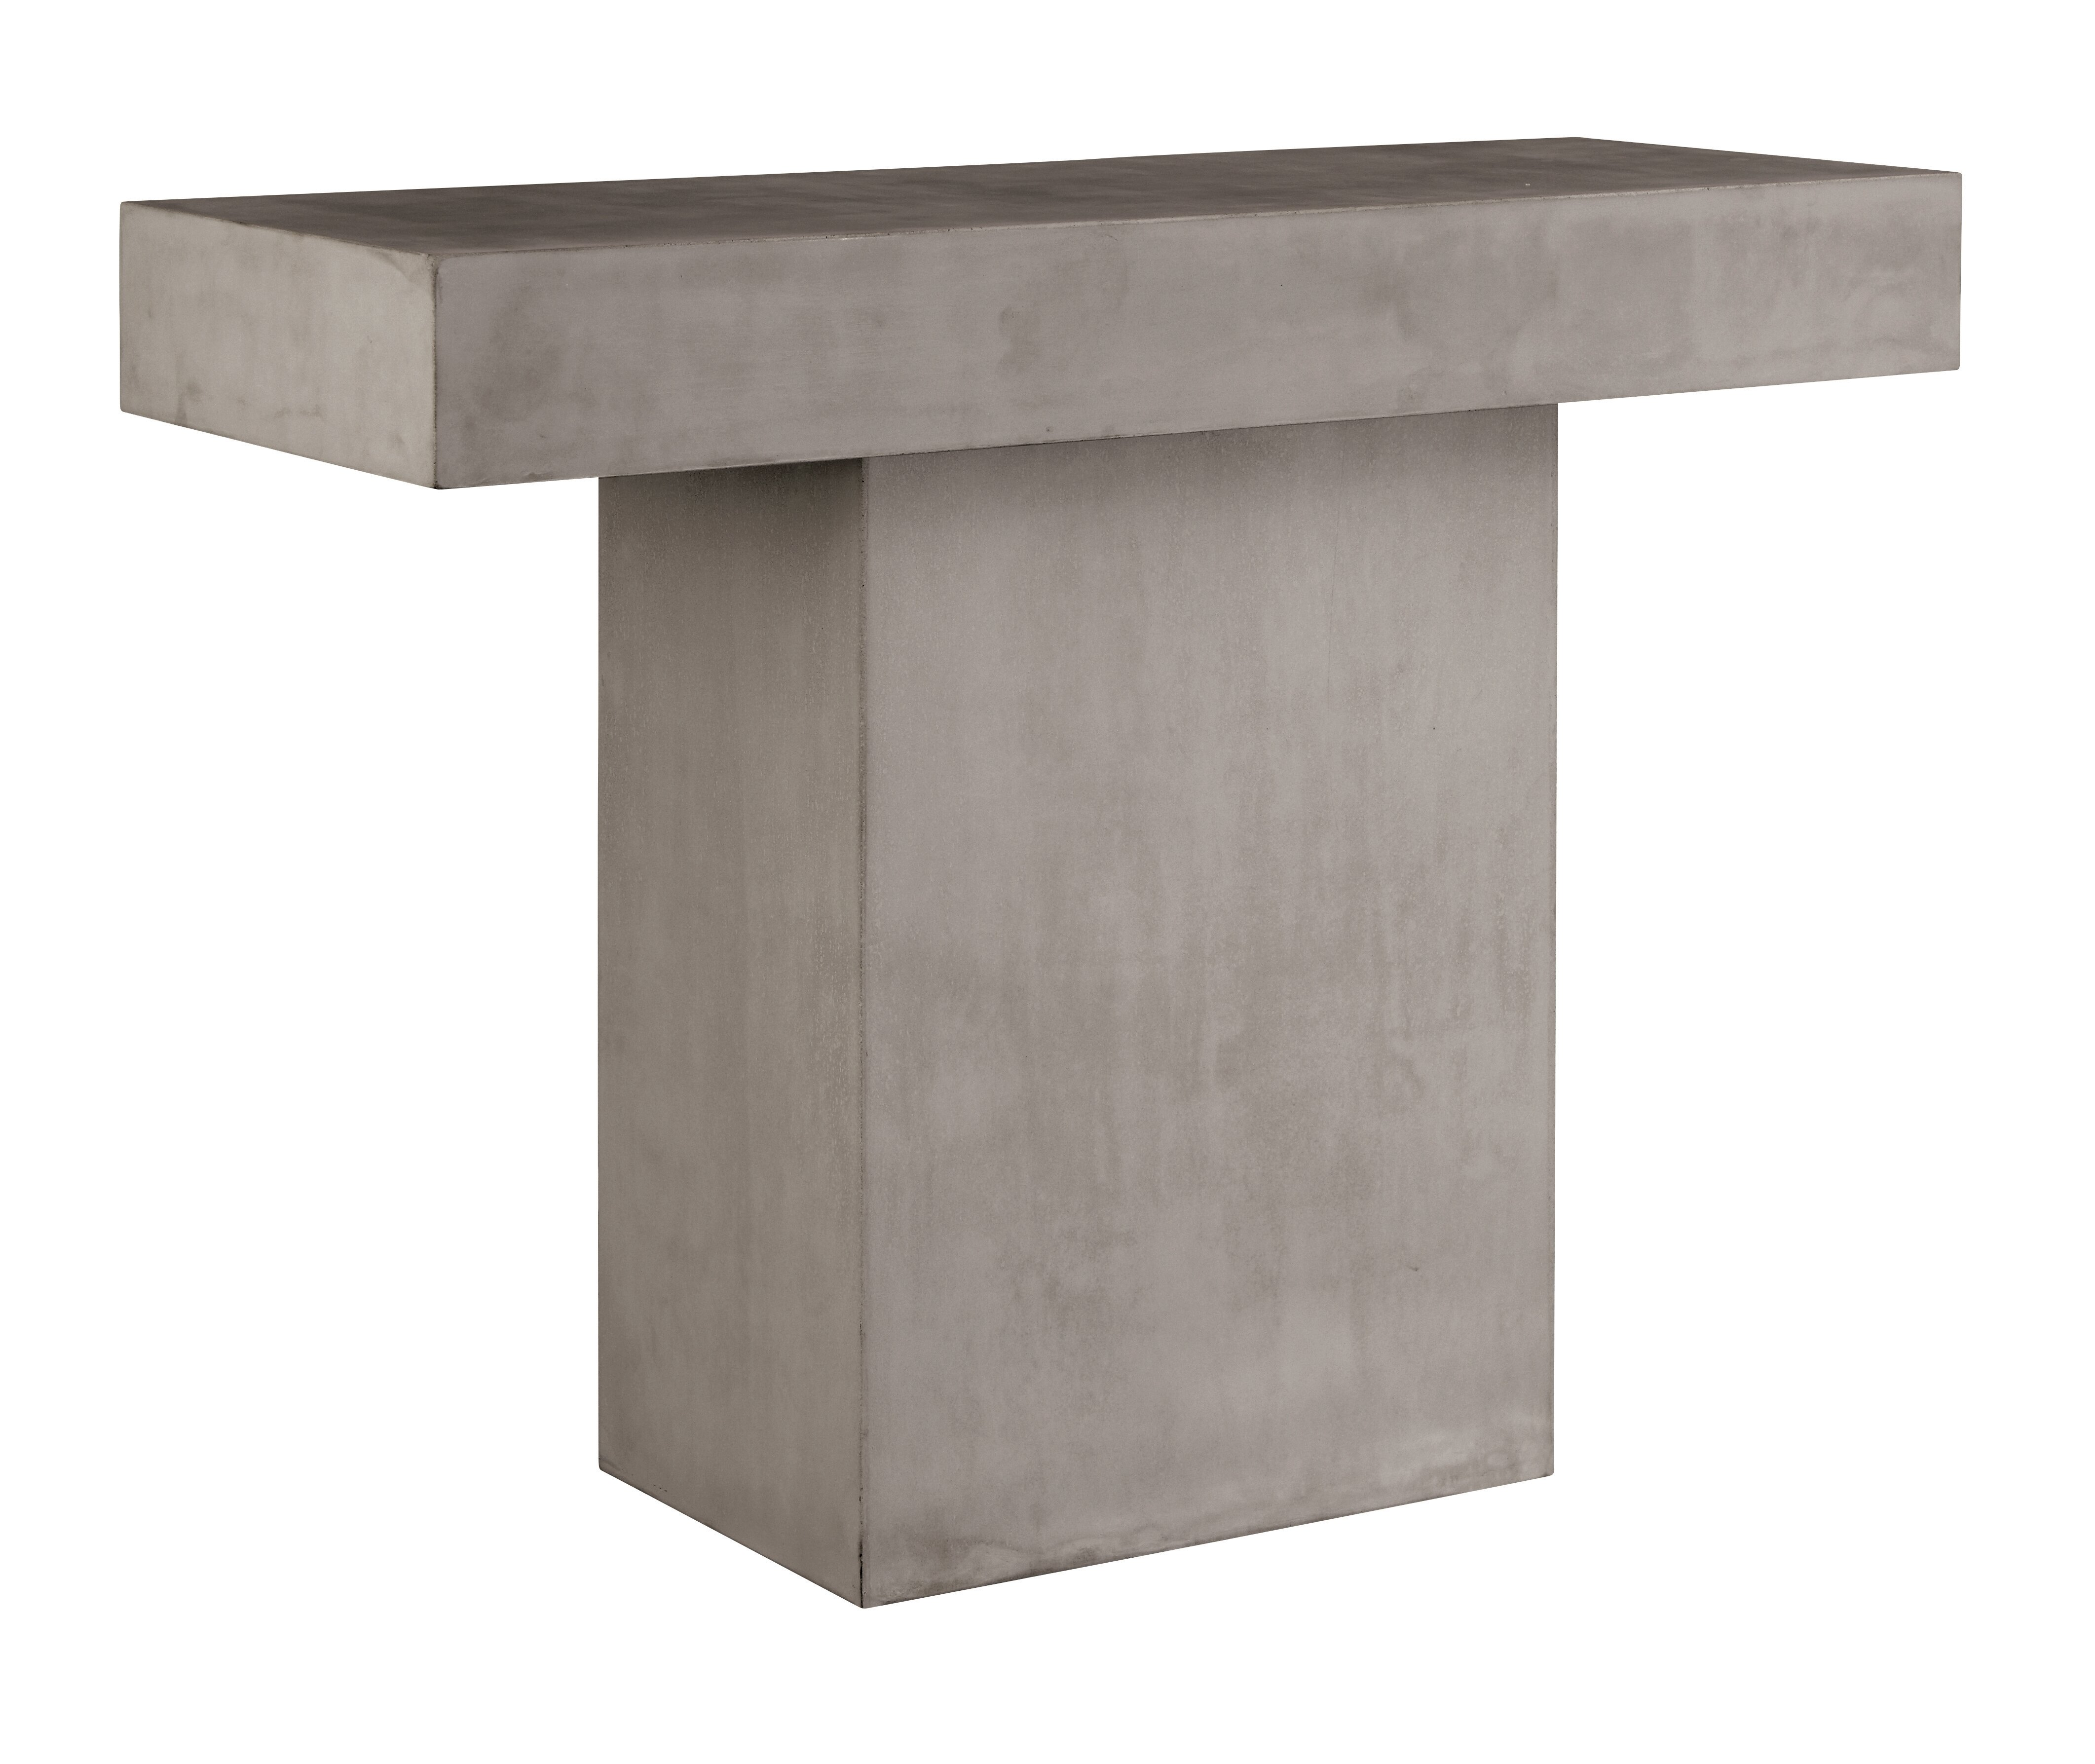 Seasonalliving Banda Concrete Console Table Perigold